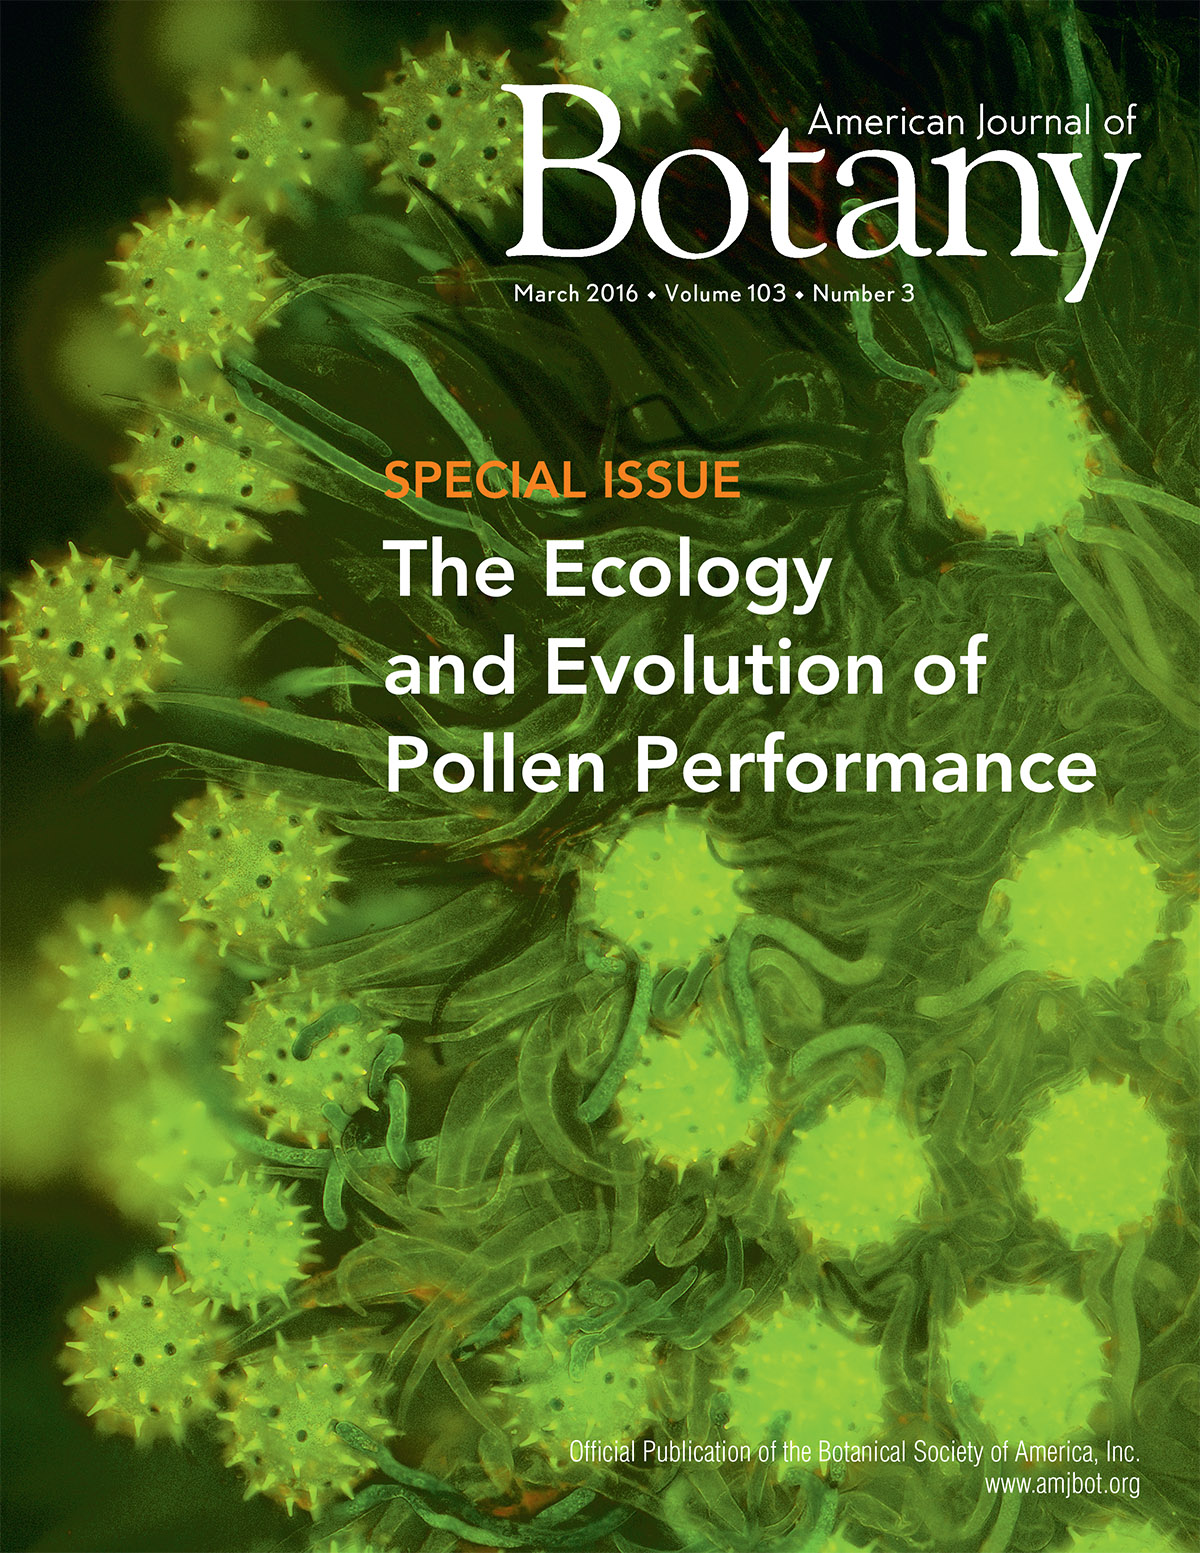 Guide: How to cite a Book in American Journal of Botany style